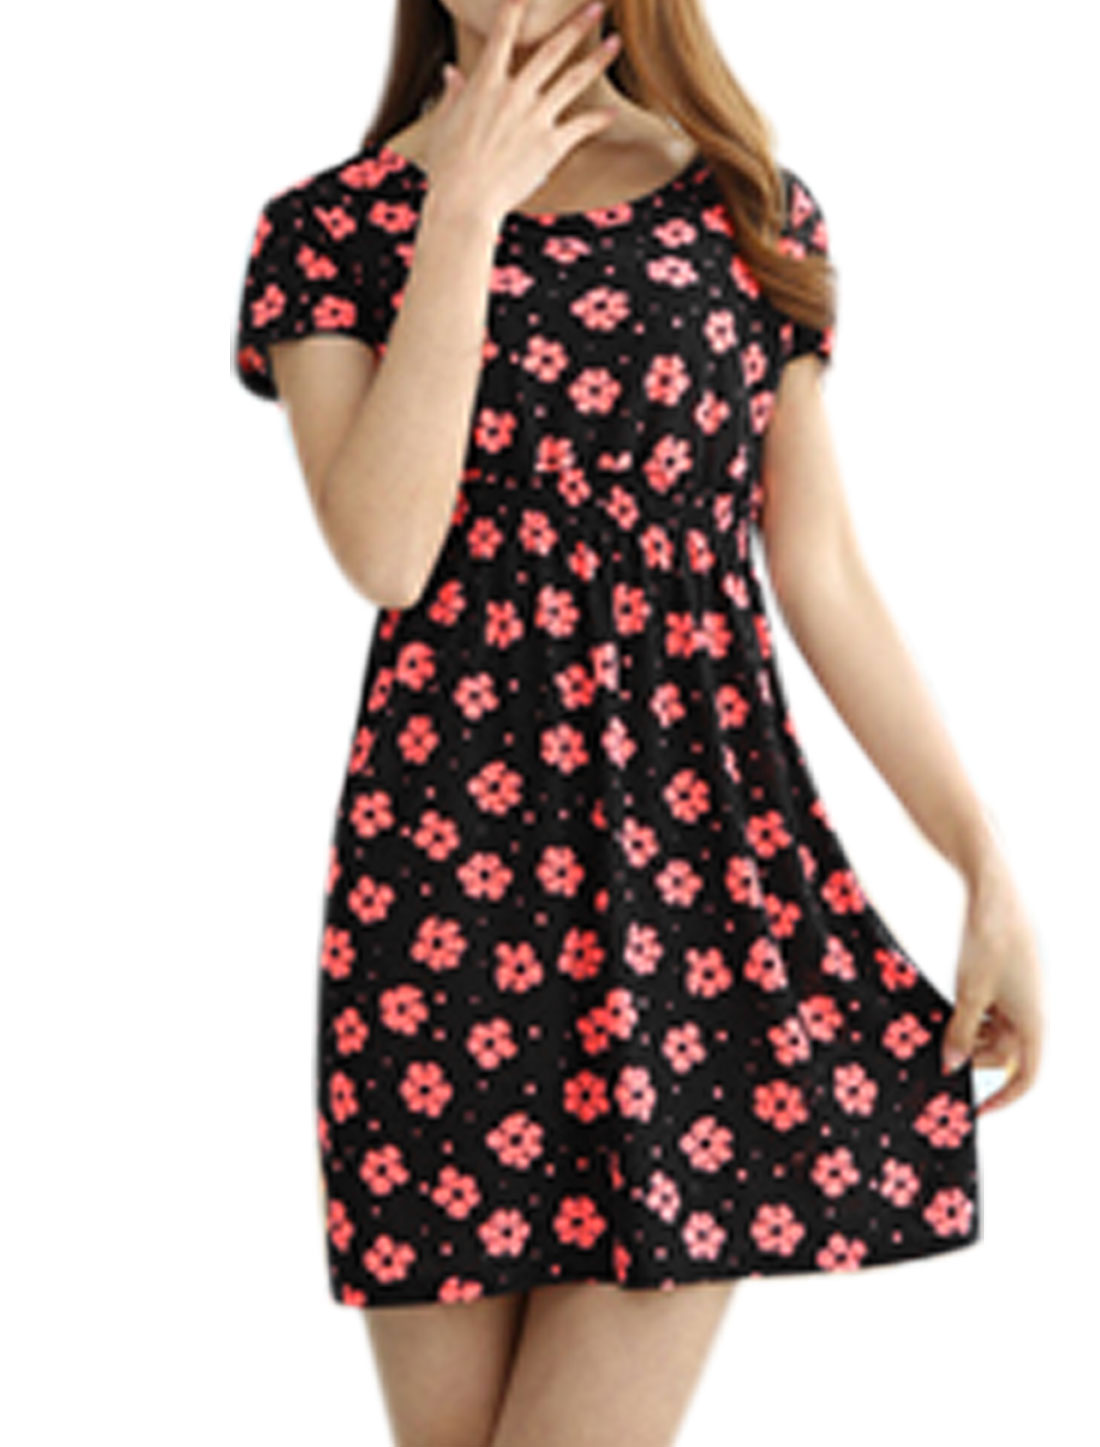 Lady Floral Prints Short Sleeves Slim Fit Slipover Summer Dress Black XS